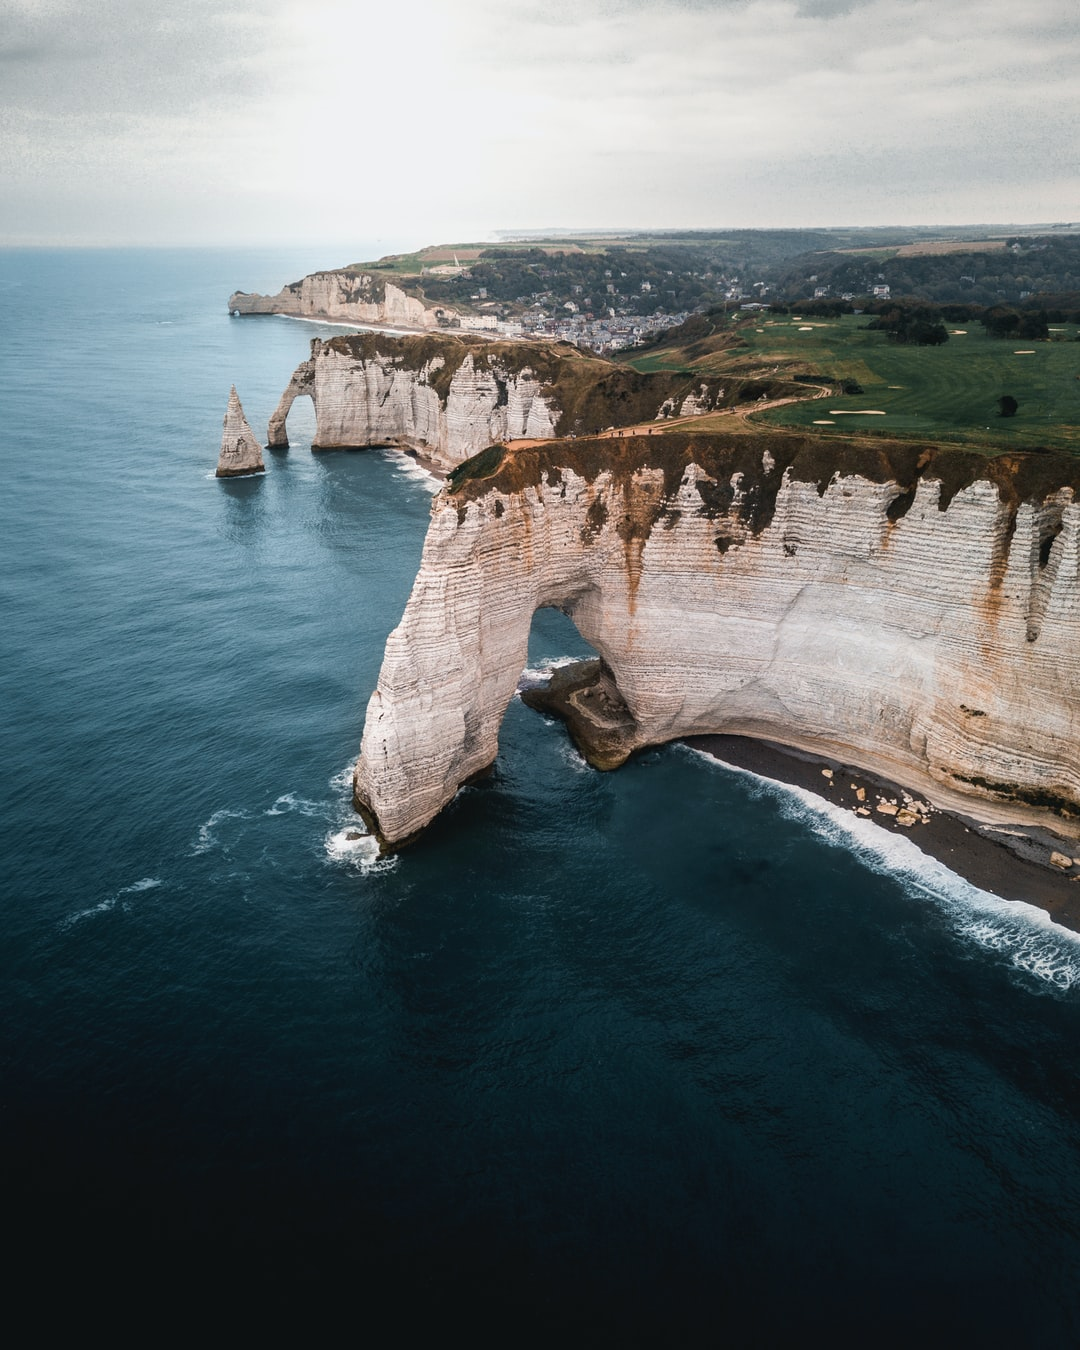 Above Etretat's cliff